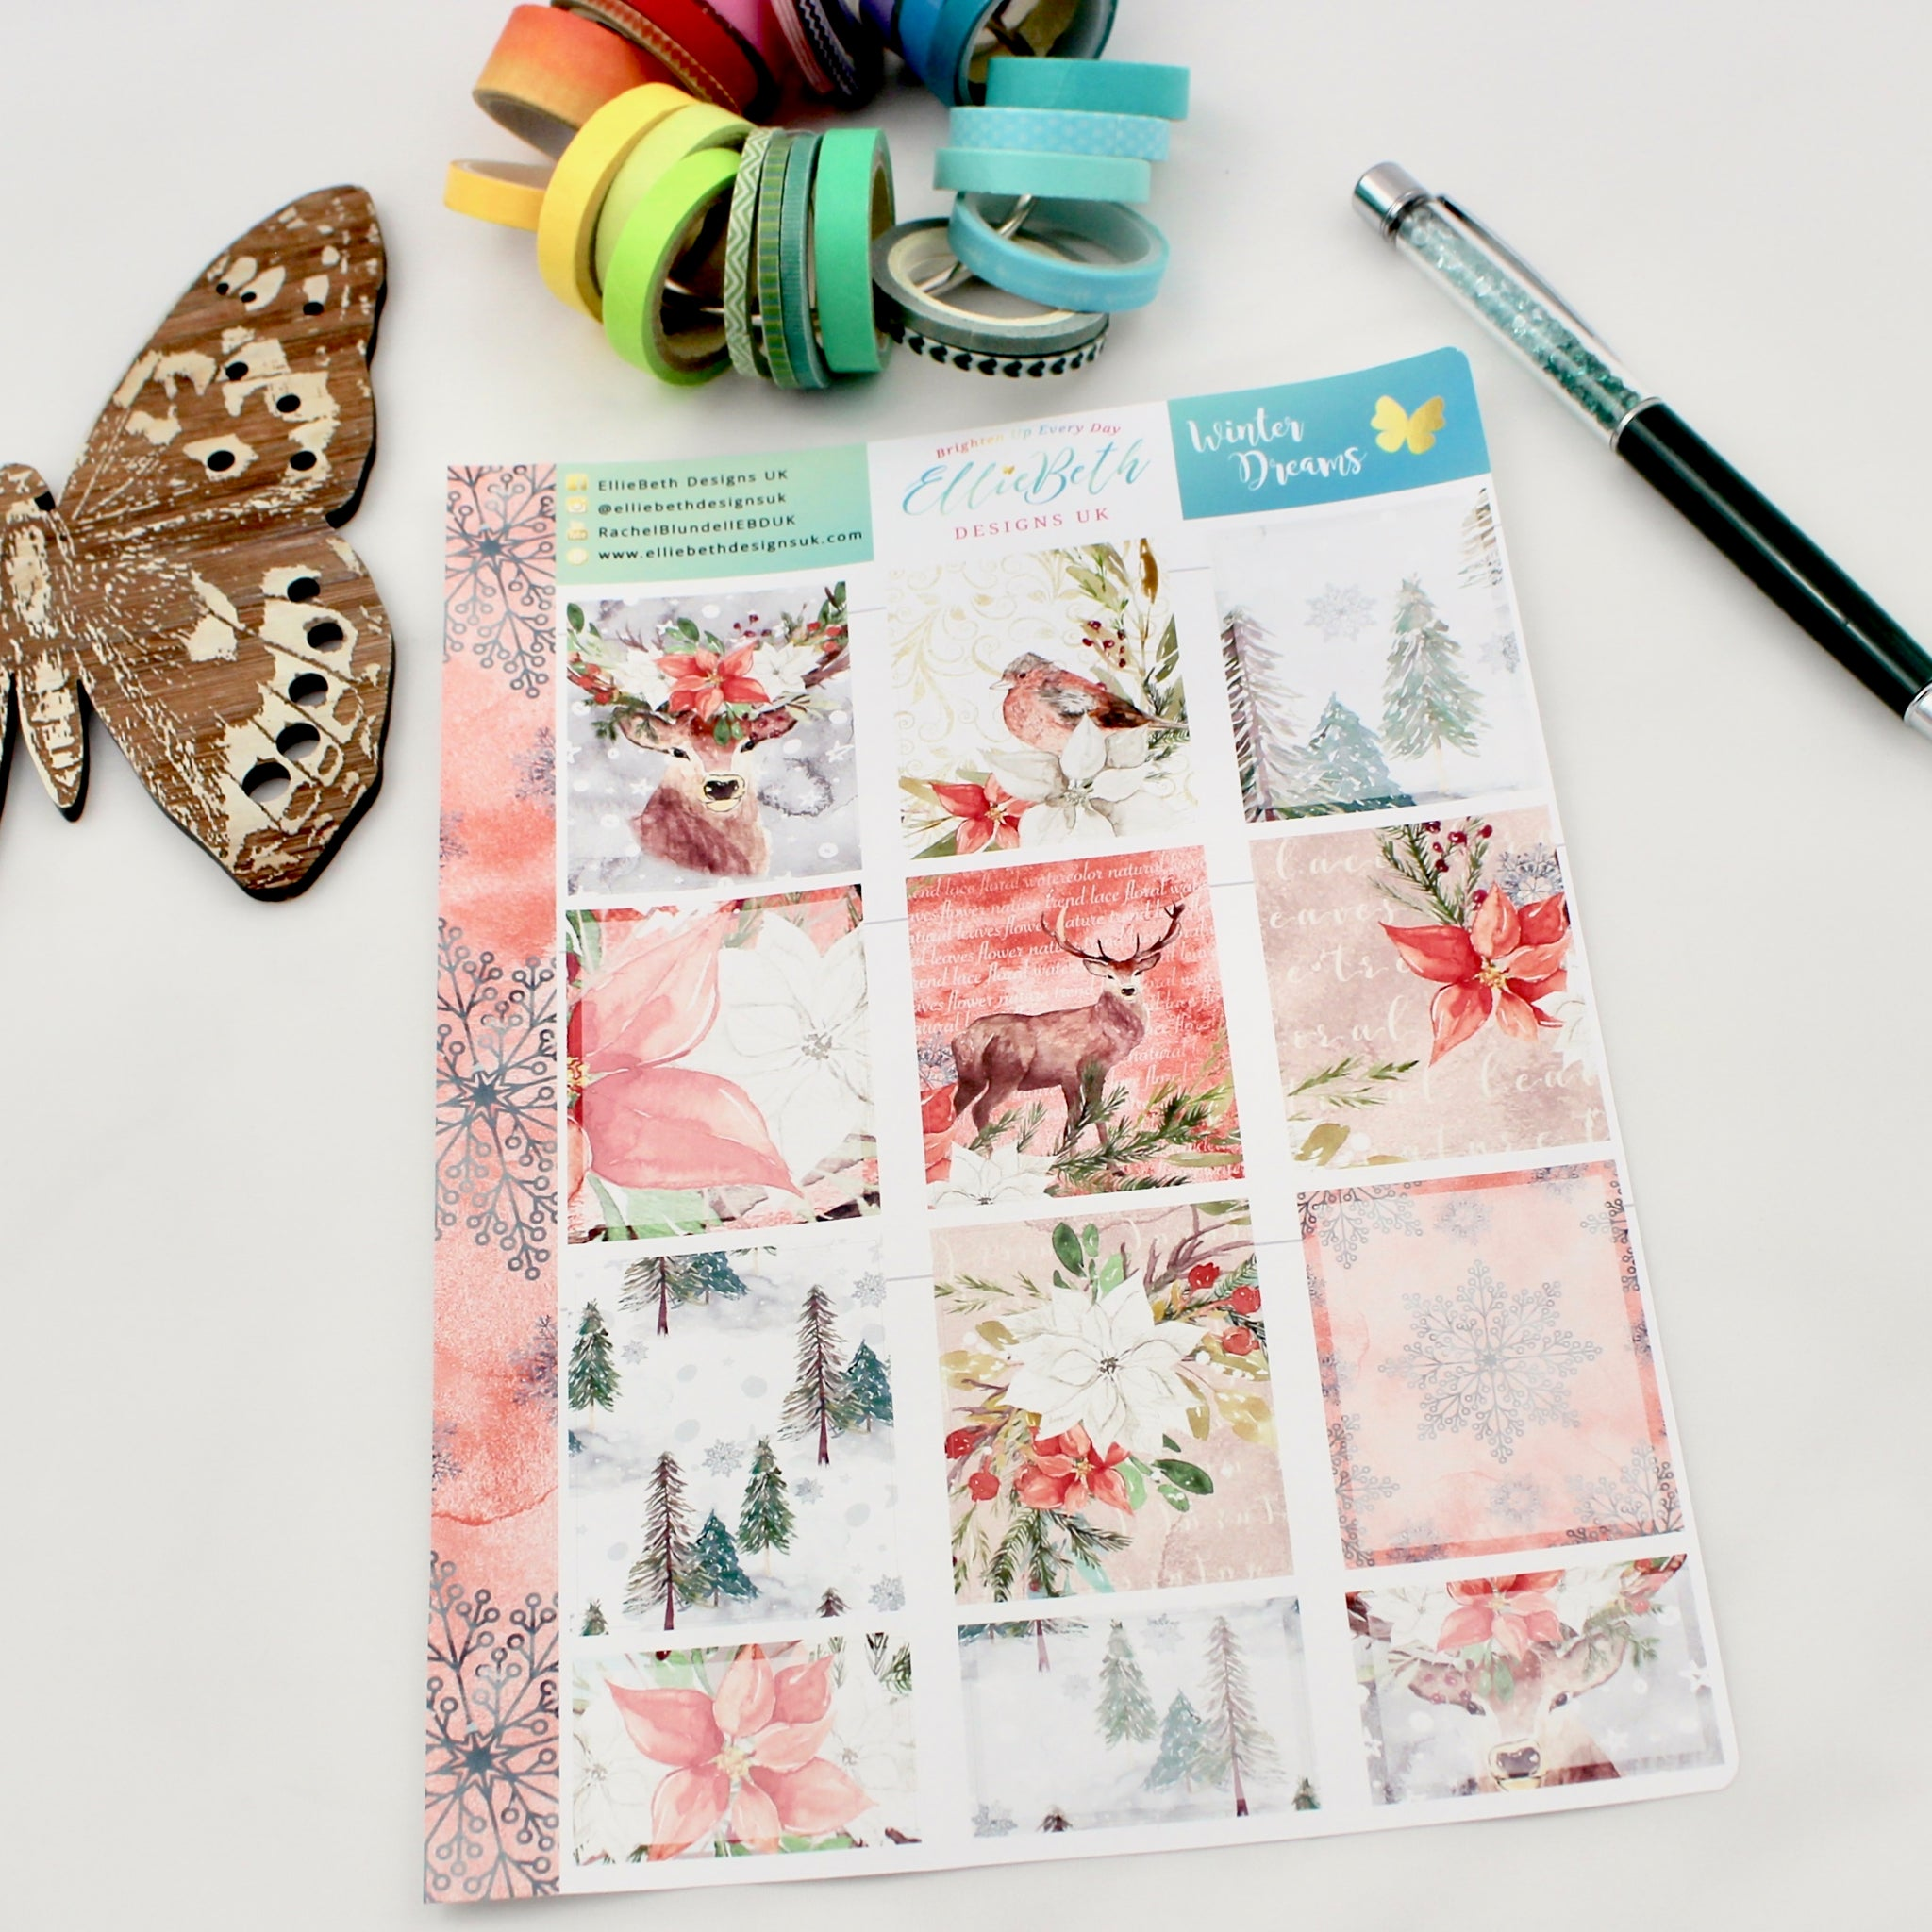 'Winter Dreams' - Designer Full and Half Boxes Sheet - A5 binder ready planner stickers